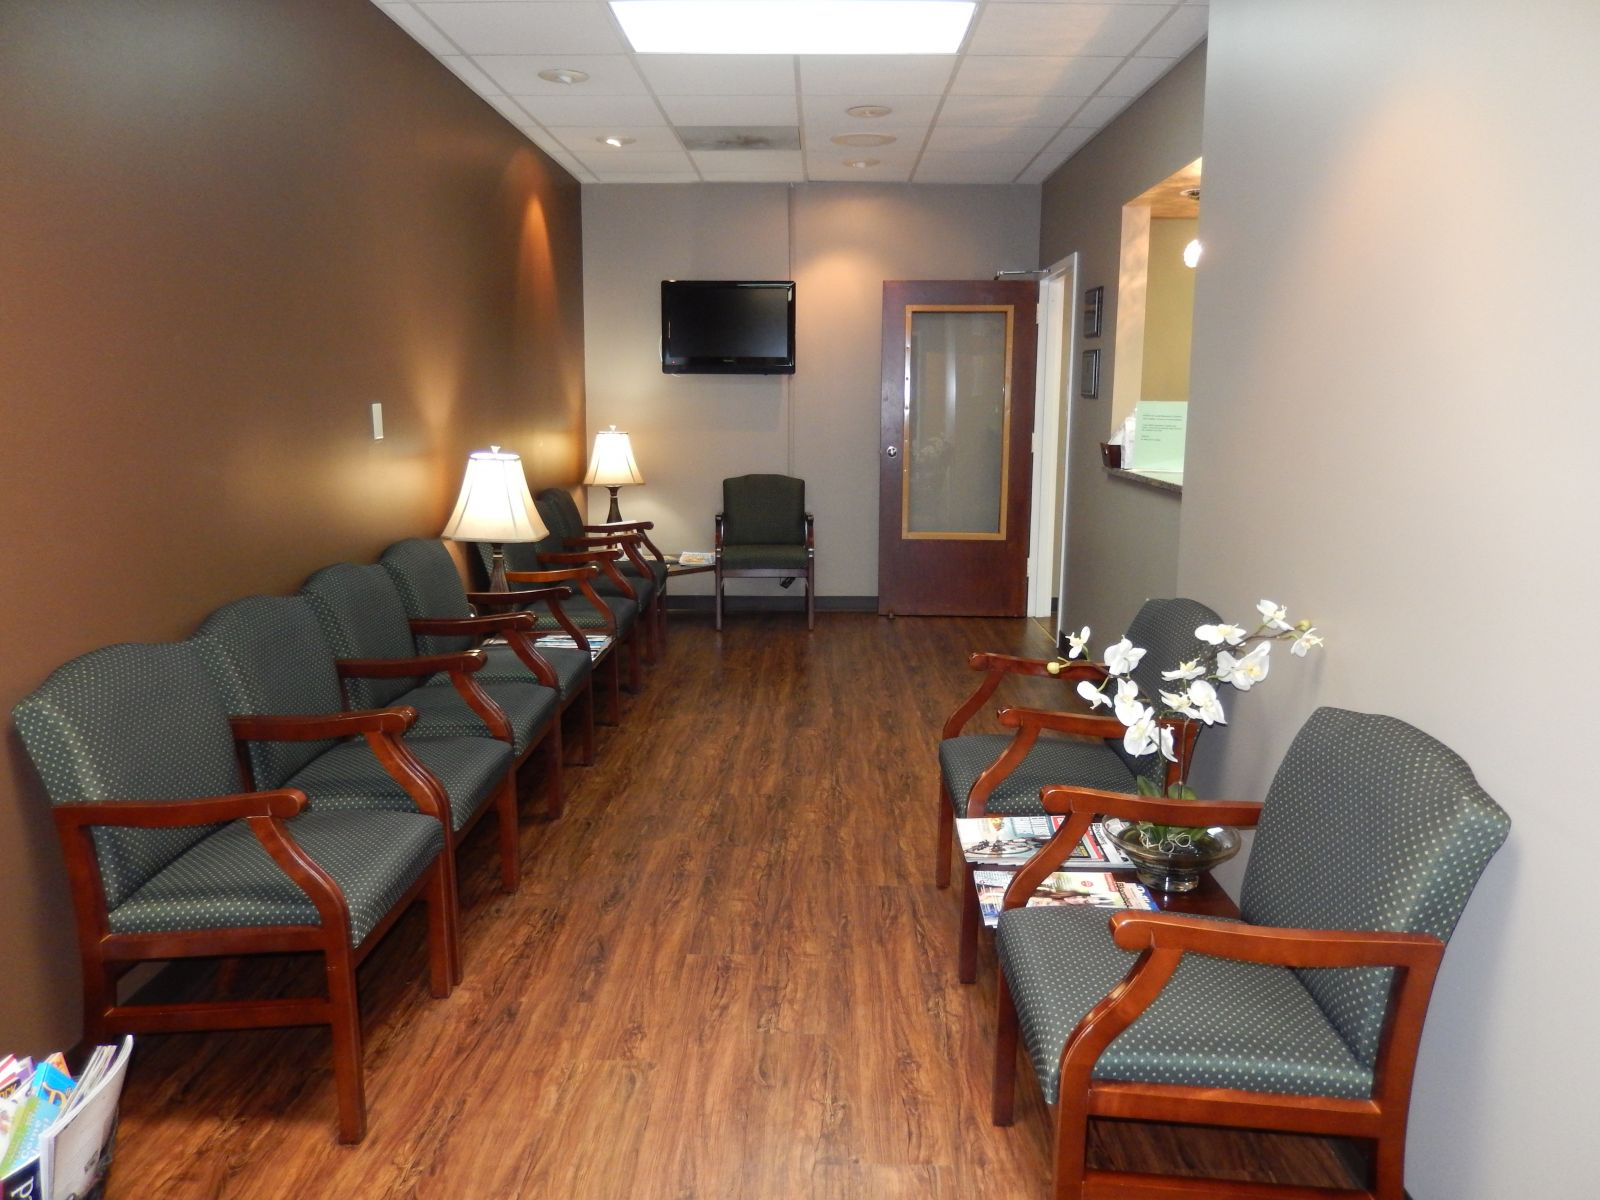 Our Dental Office in Frederick, Maryland